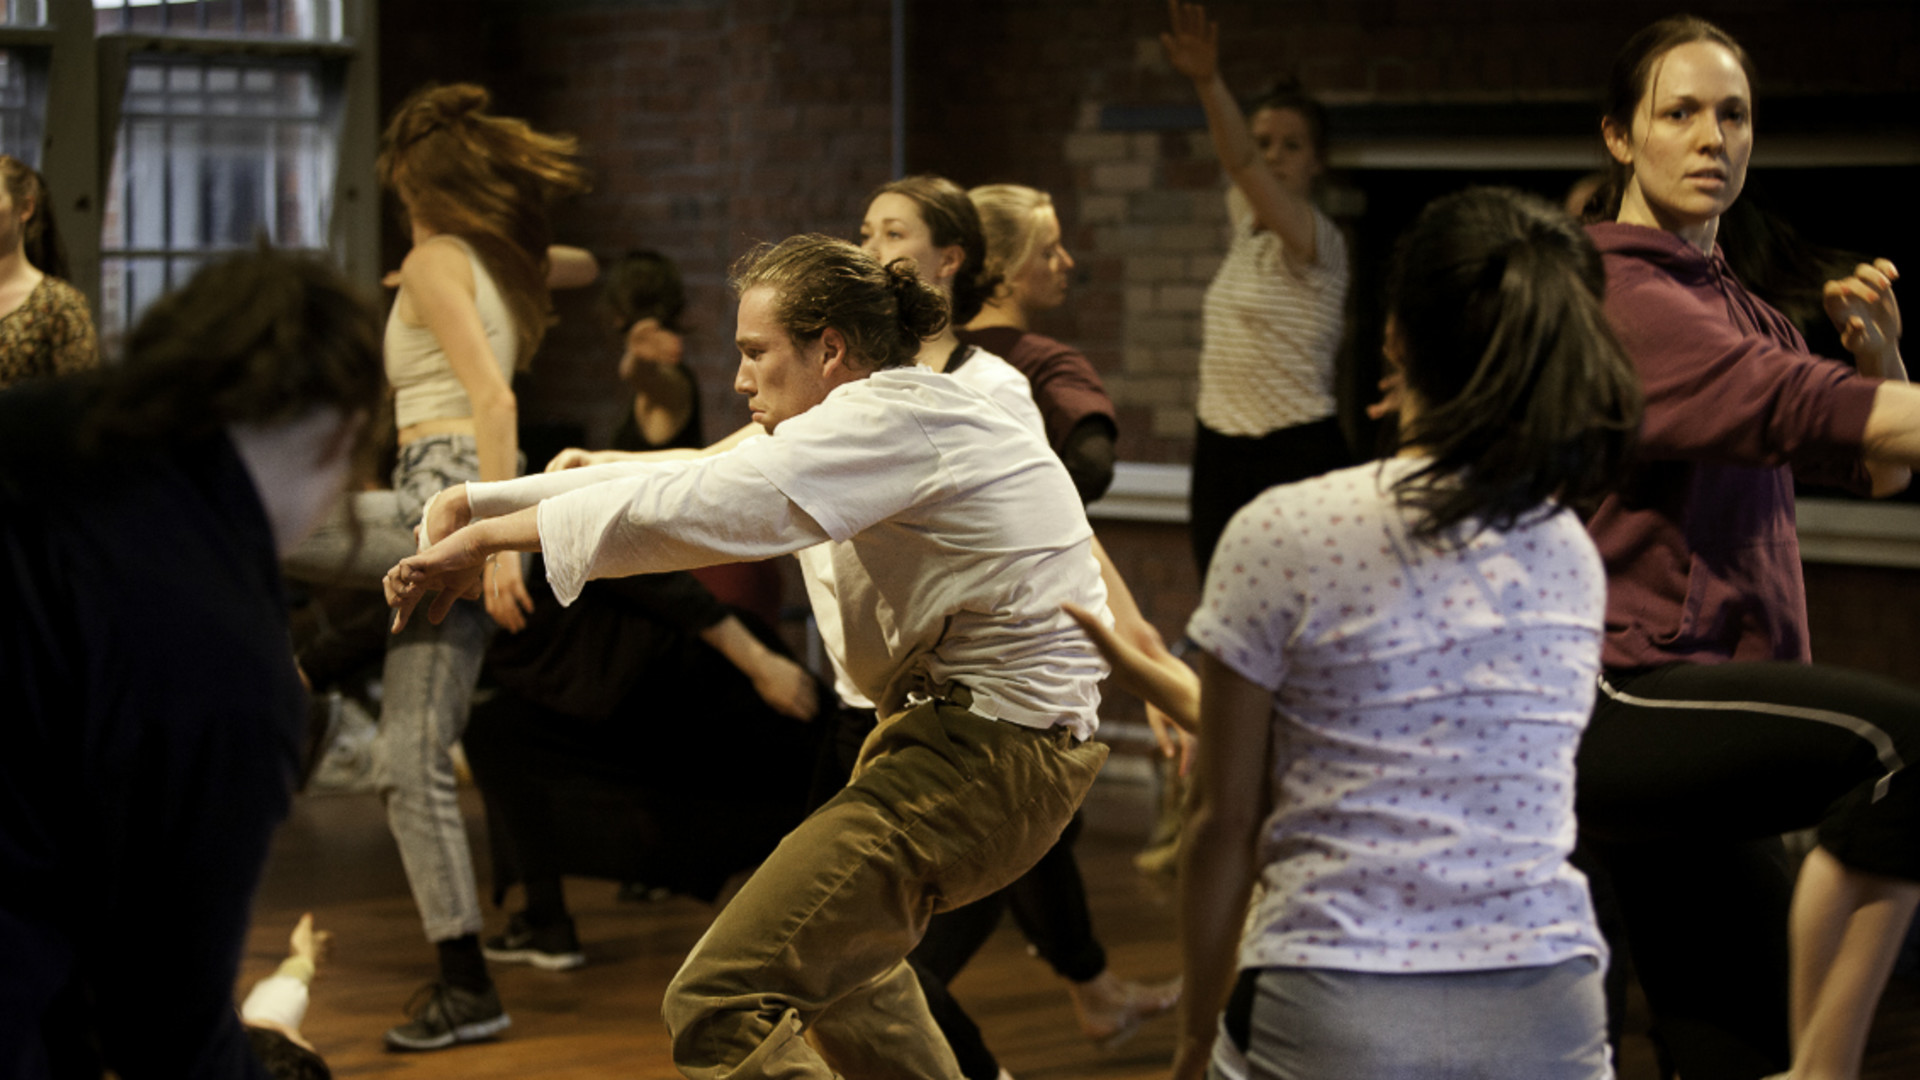 A large number of dancers dressed in everyday clothes energetically moving in a red brick room with a wooden floor.